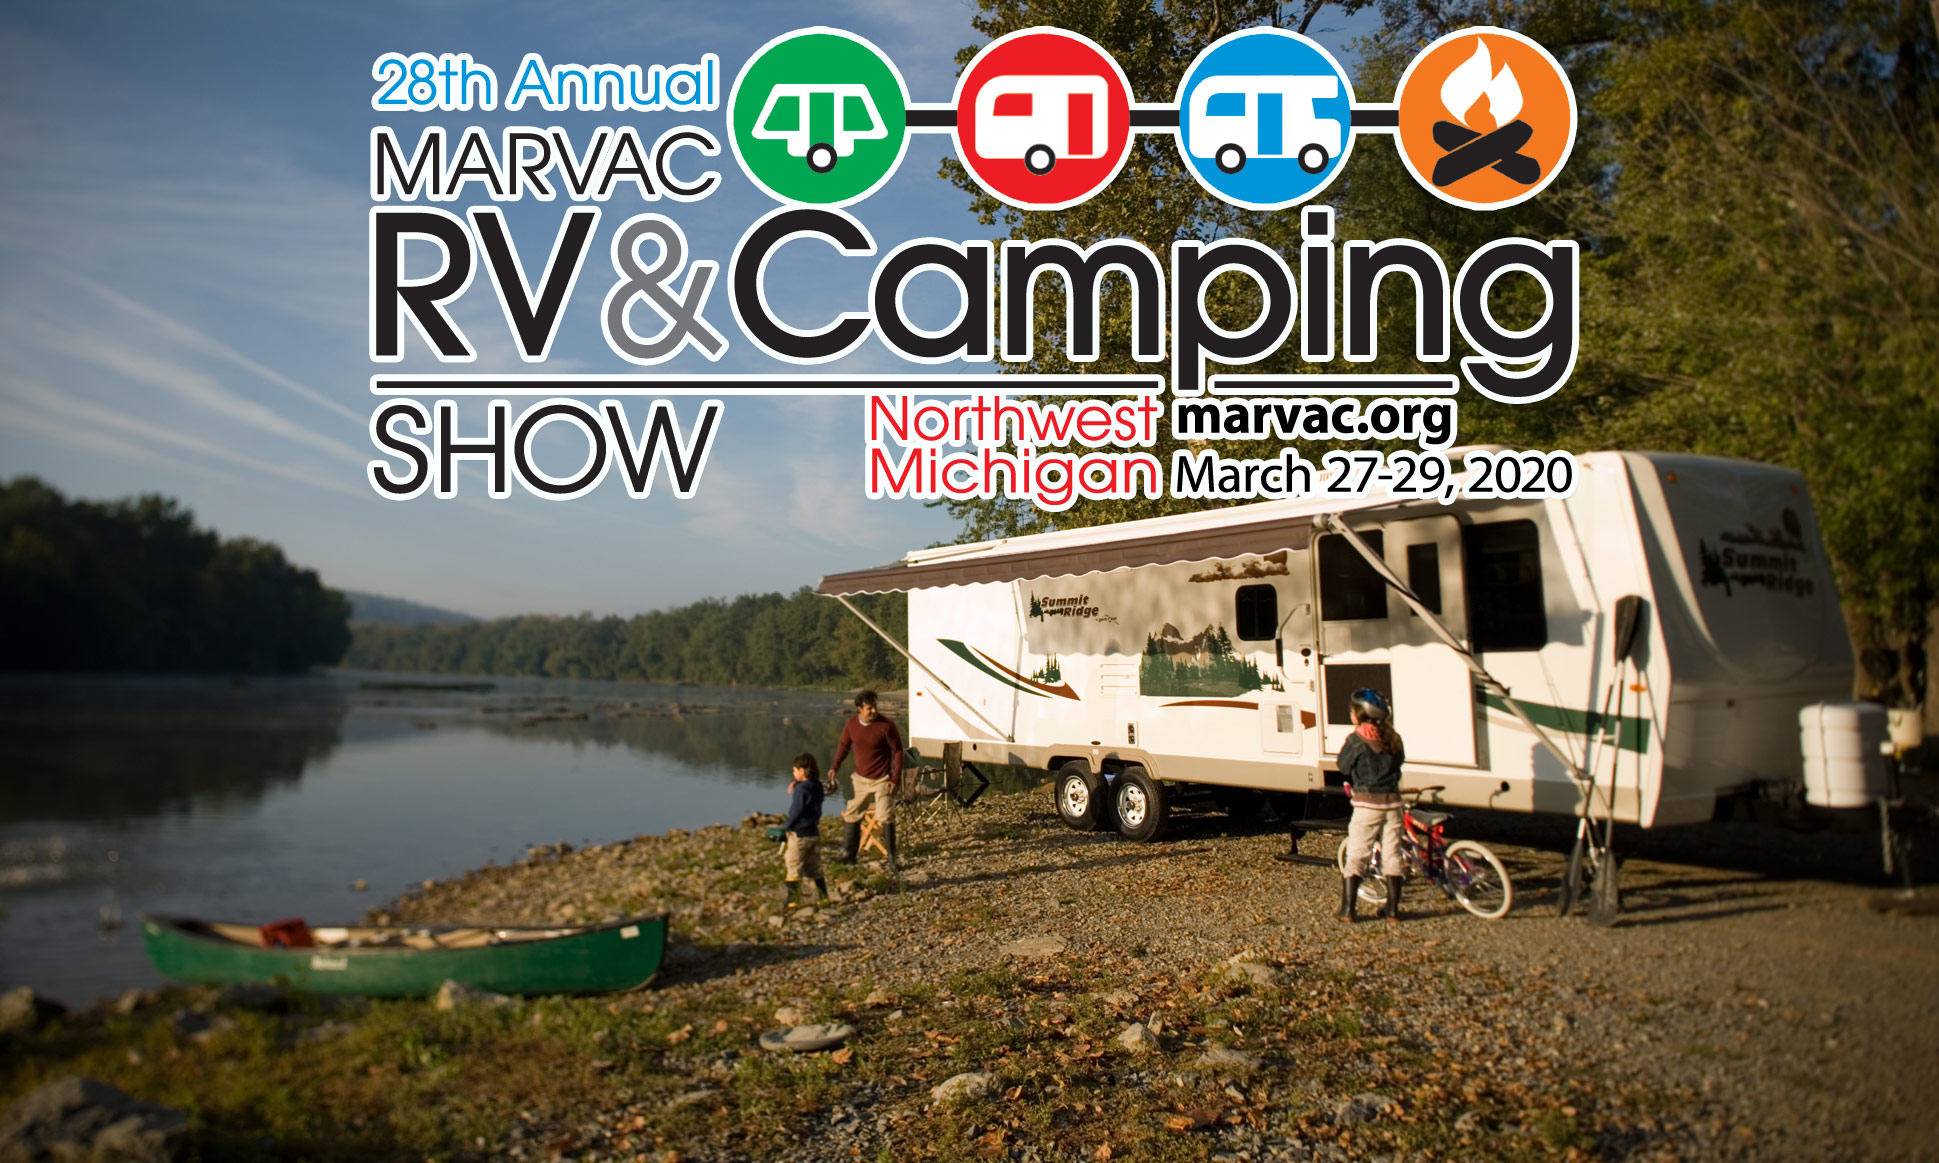 28th Annual Northwest Michigan RV & Camping Show March 27-29